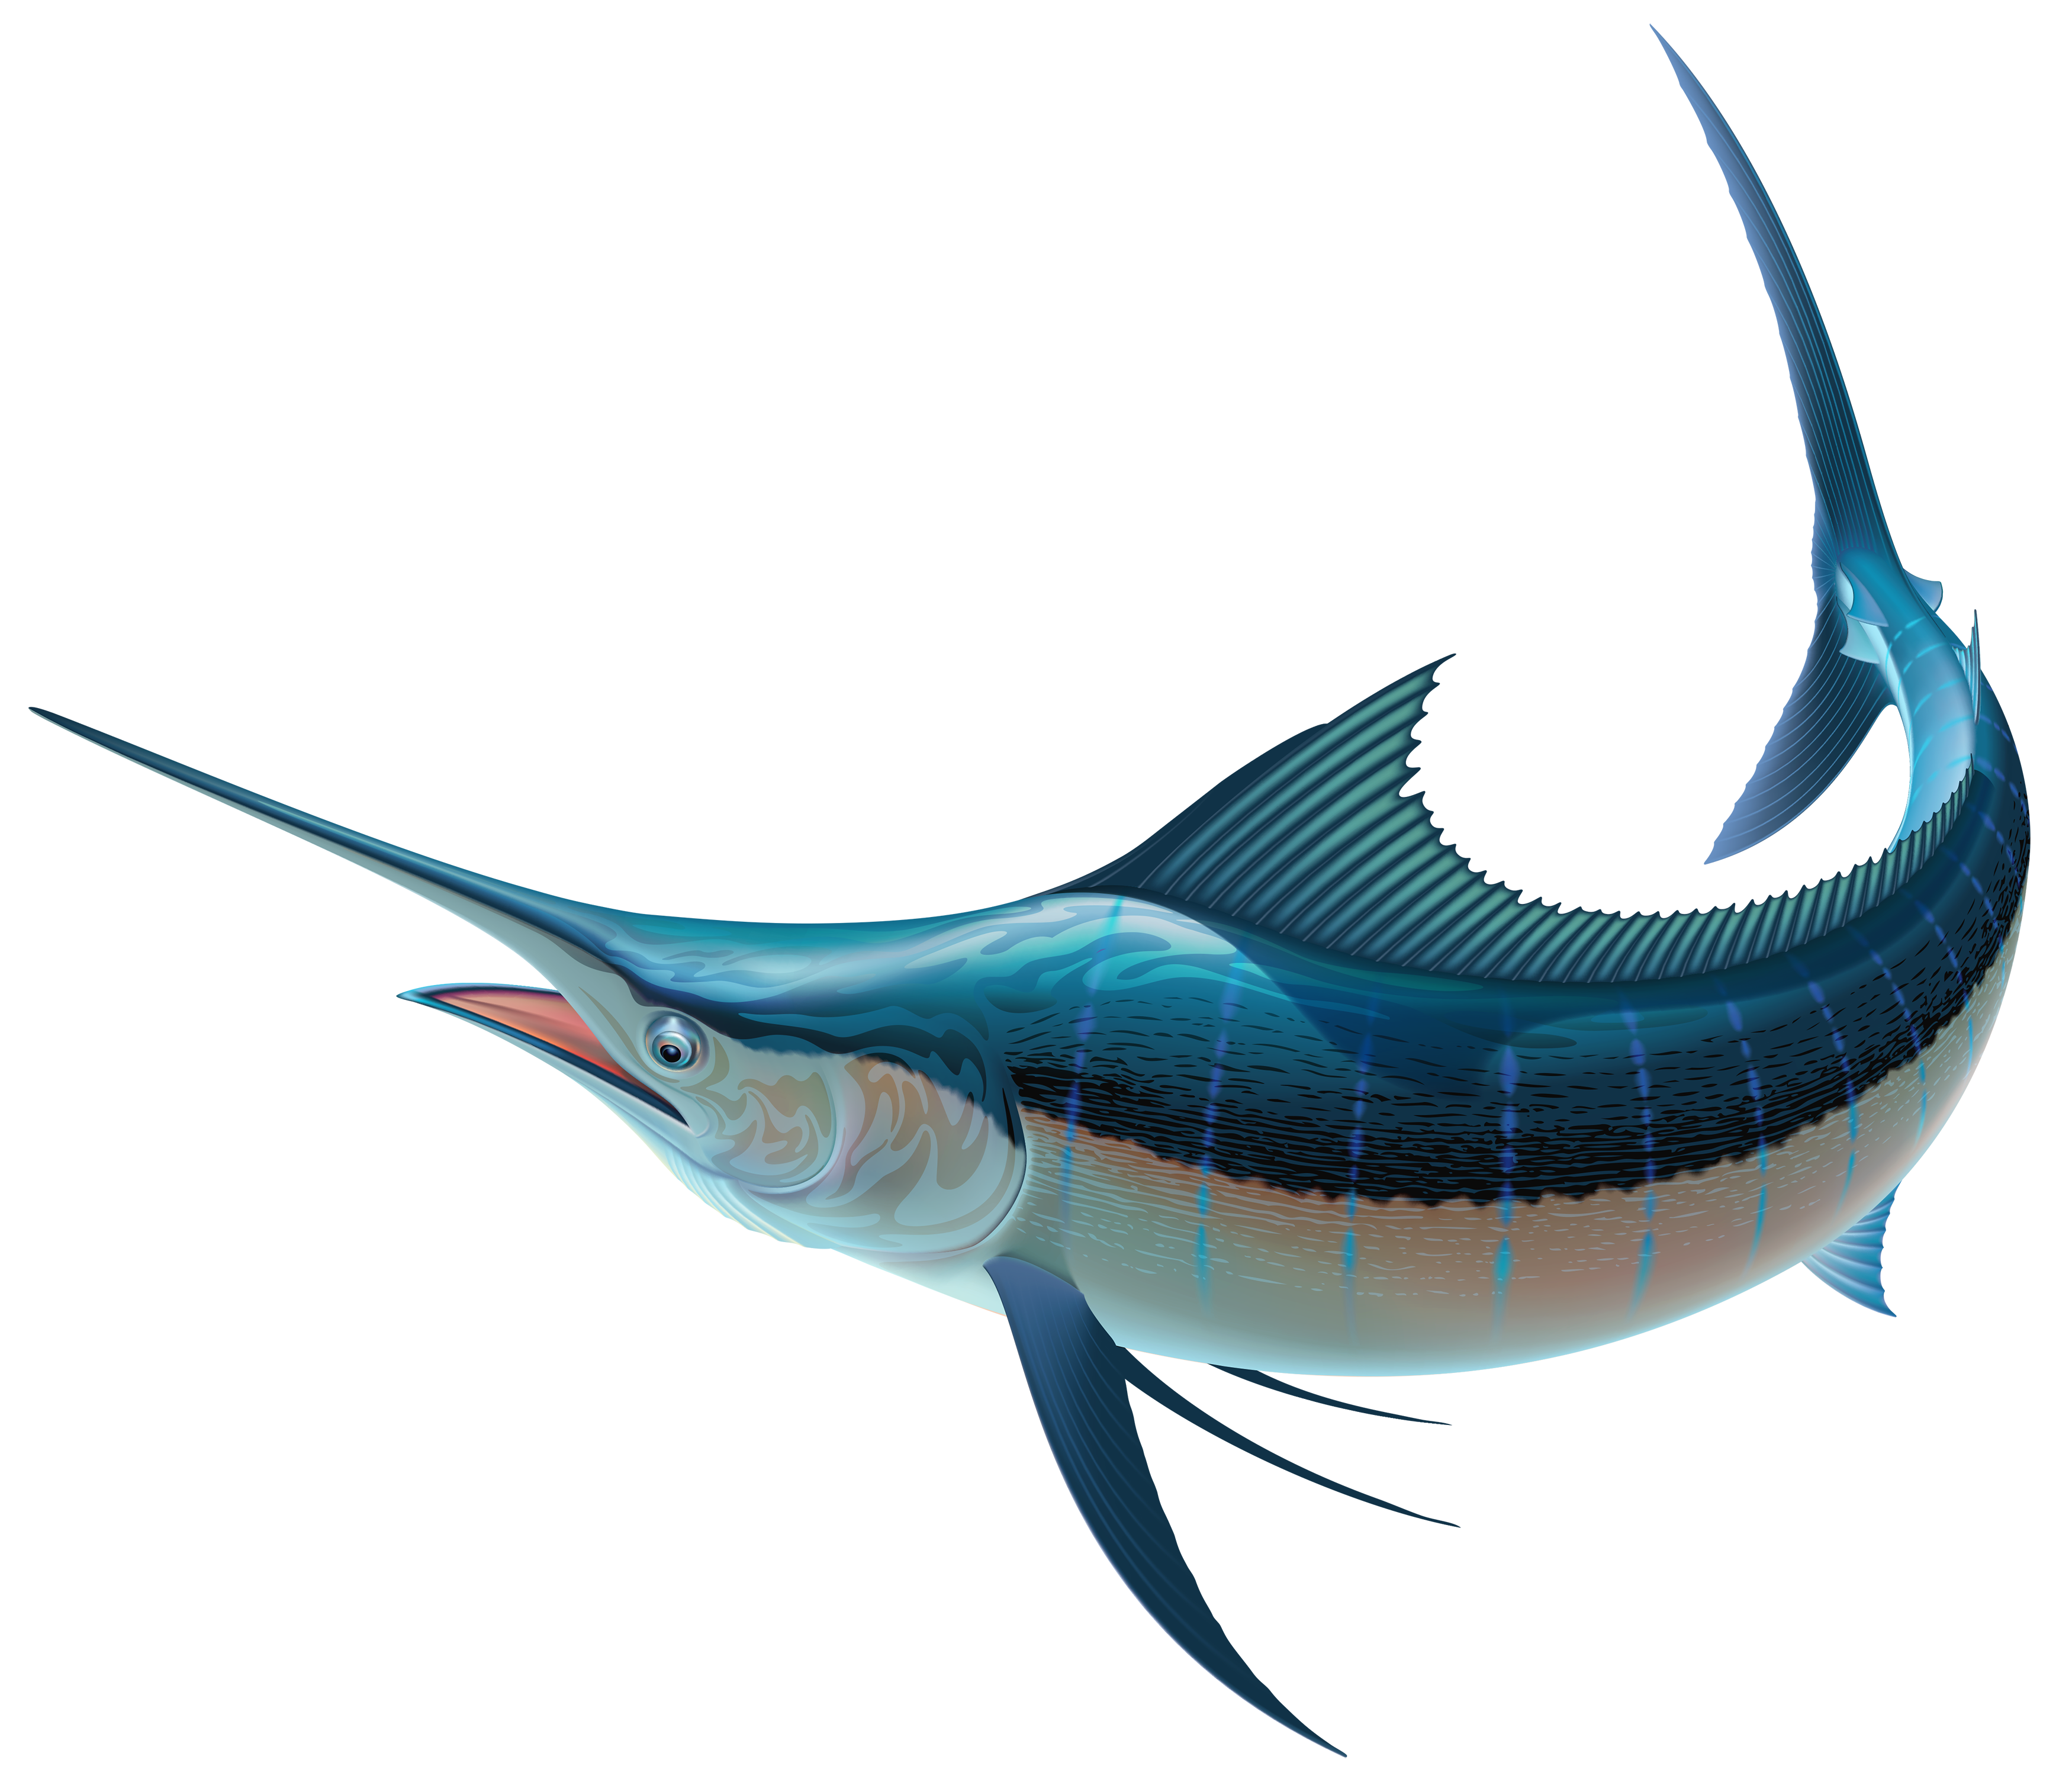 Long fish clipart banner royalty free download Swordfish PNG Clipart - Best WEB Clipart banner royalty free download